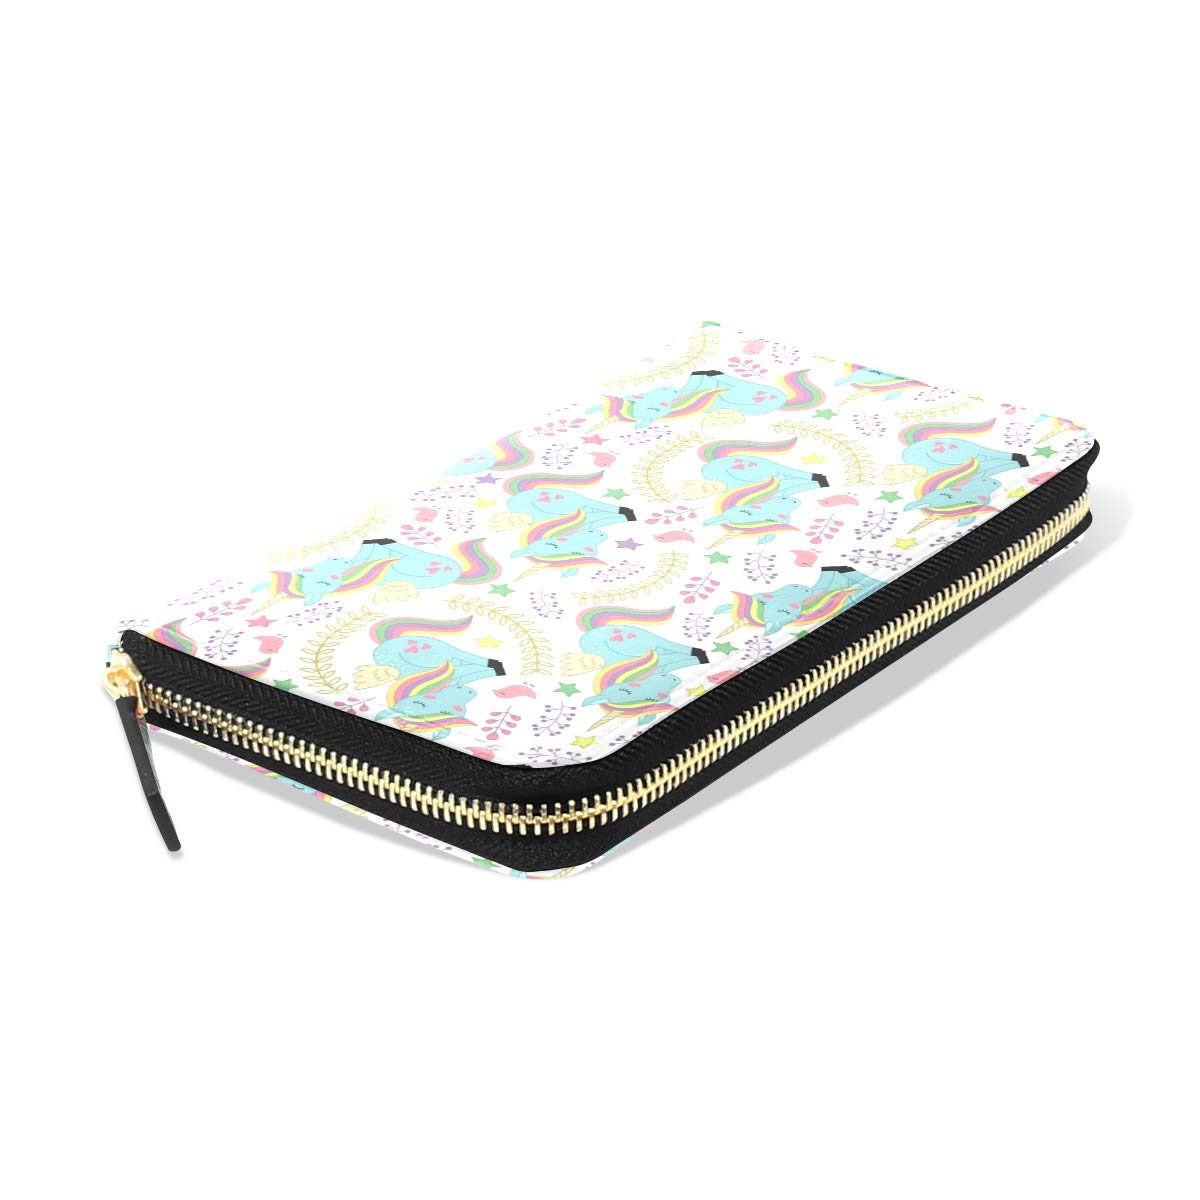 Women LeatherPattern With Unicorn And Bird VWallet Large Capacity Zipper Travel Wristlet Bags Clutch Cellphone Bag